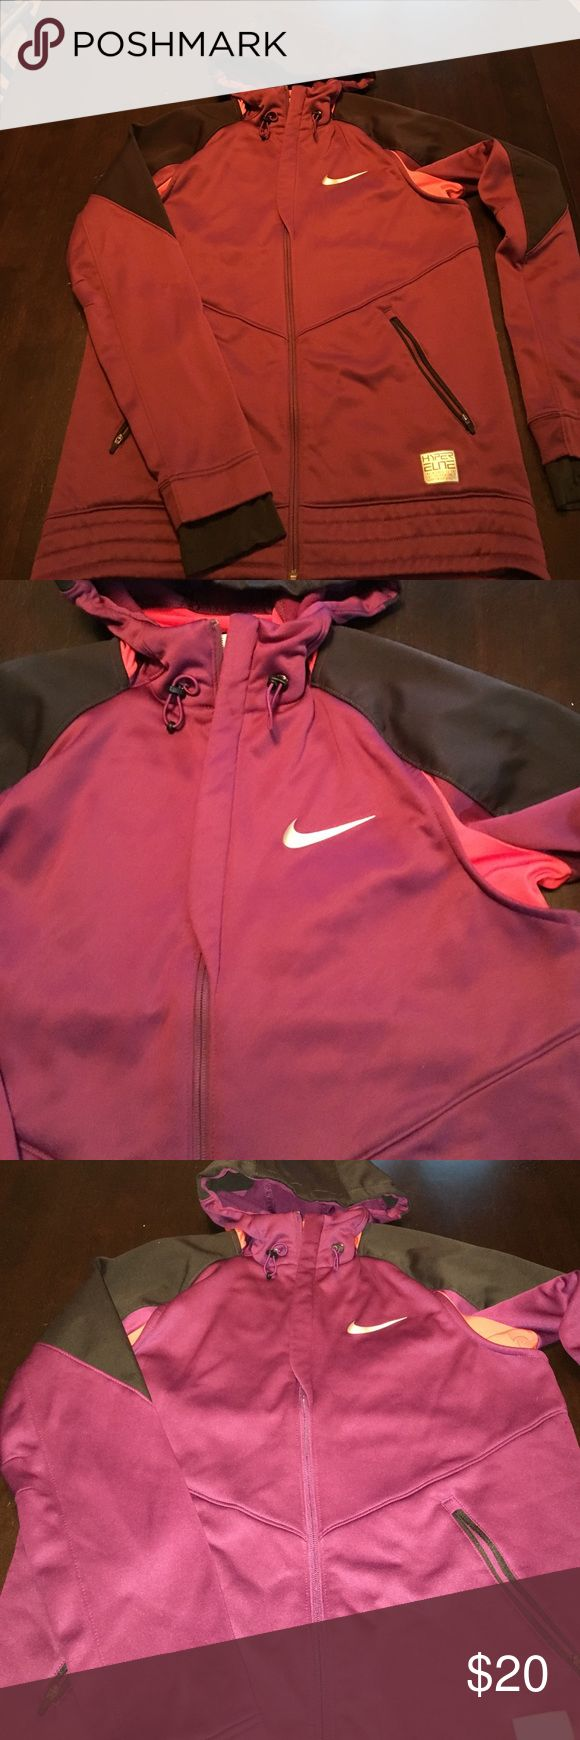 Woman's Nike jacket Very cool Nike jacket.  It is light weight and very comfy.  Excellent condition.   It is a nice purple color. Nike Jackets & Coats